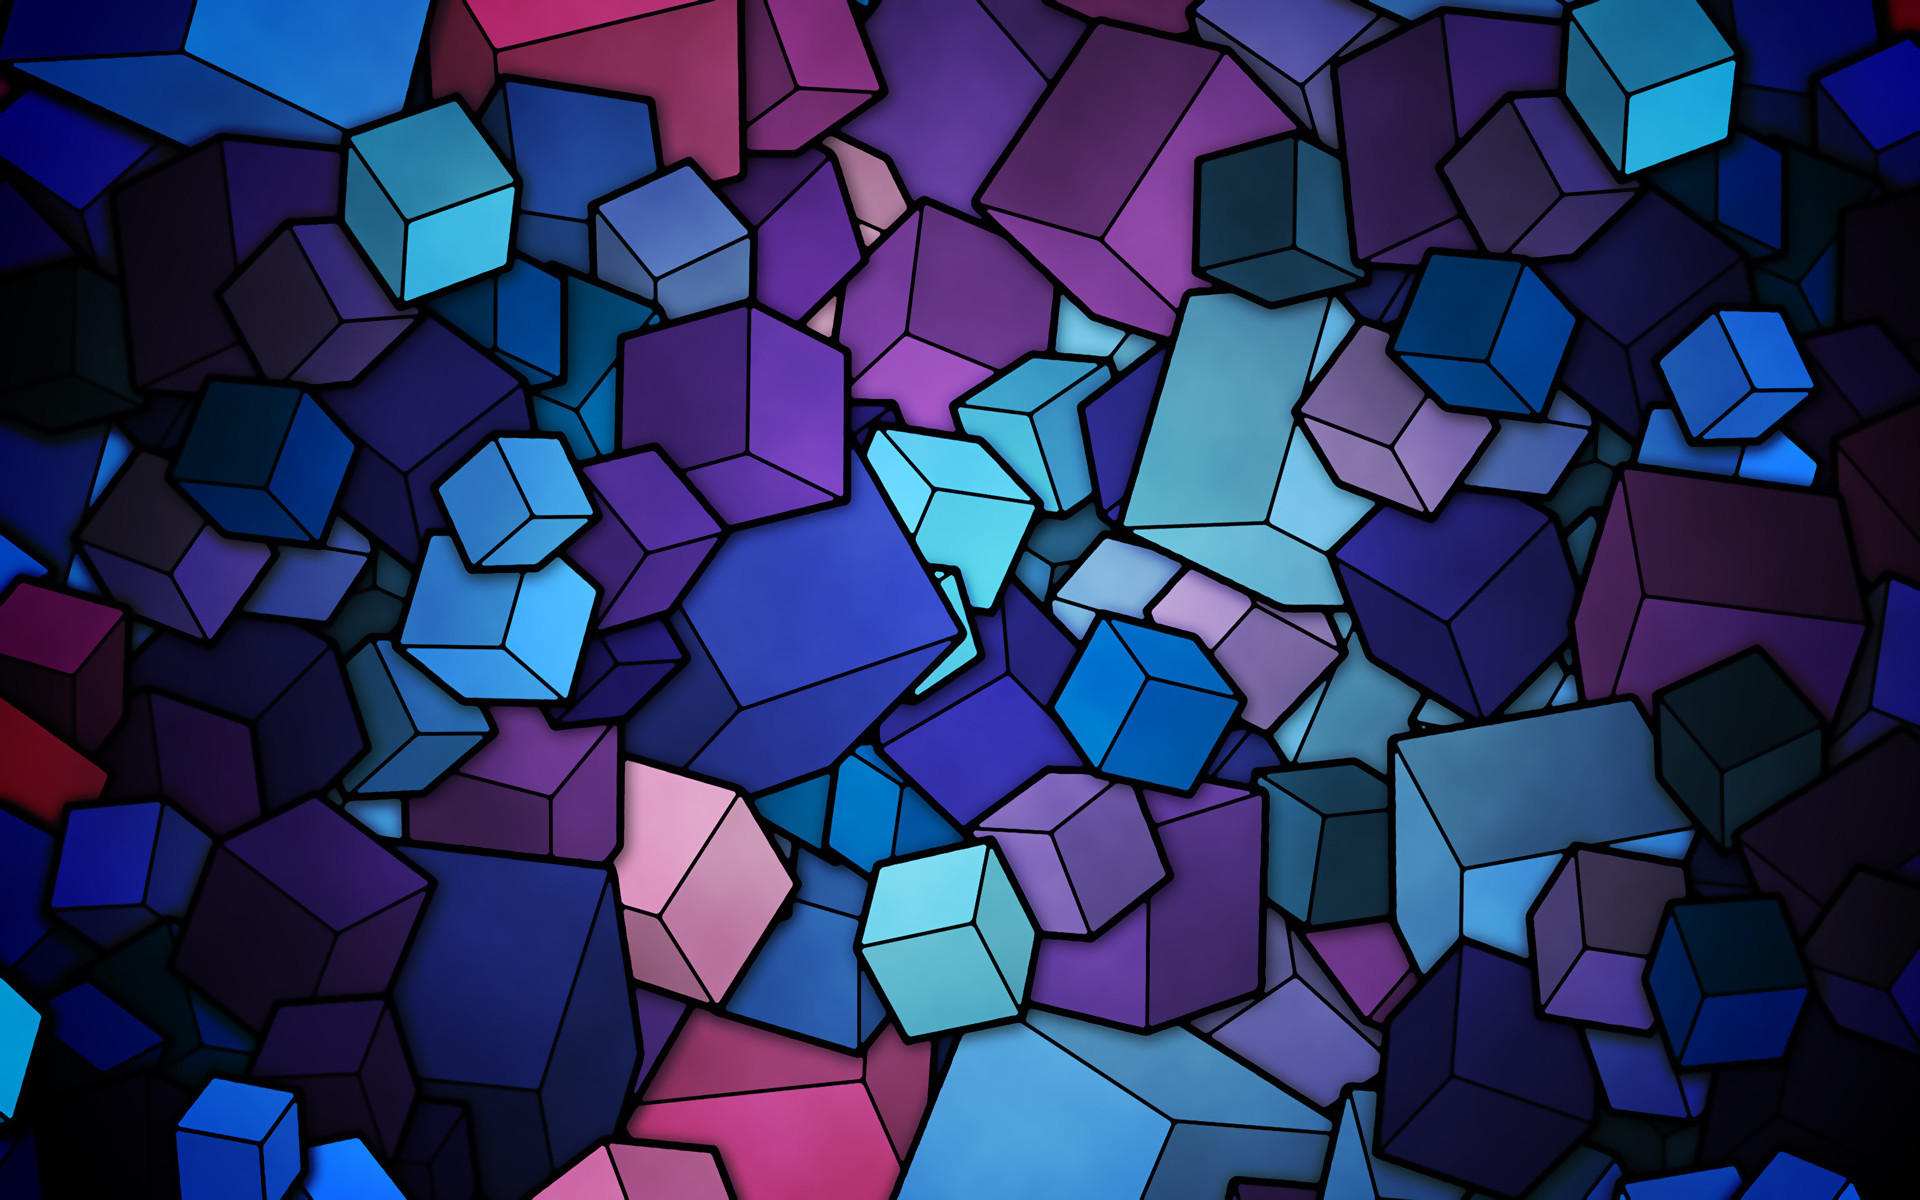 1920x1200 Super Abstract Wallpaper. « Abstract BackgroundCute Abstract Wallpaper »